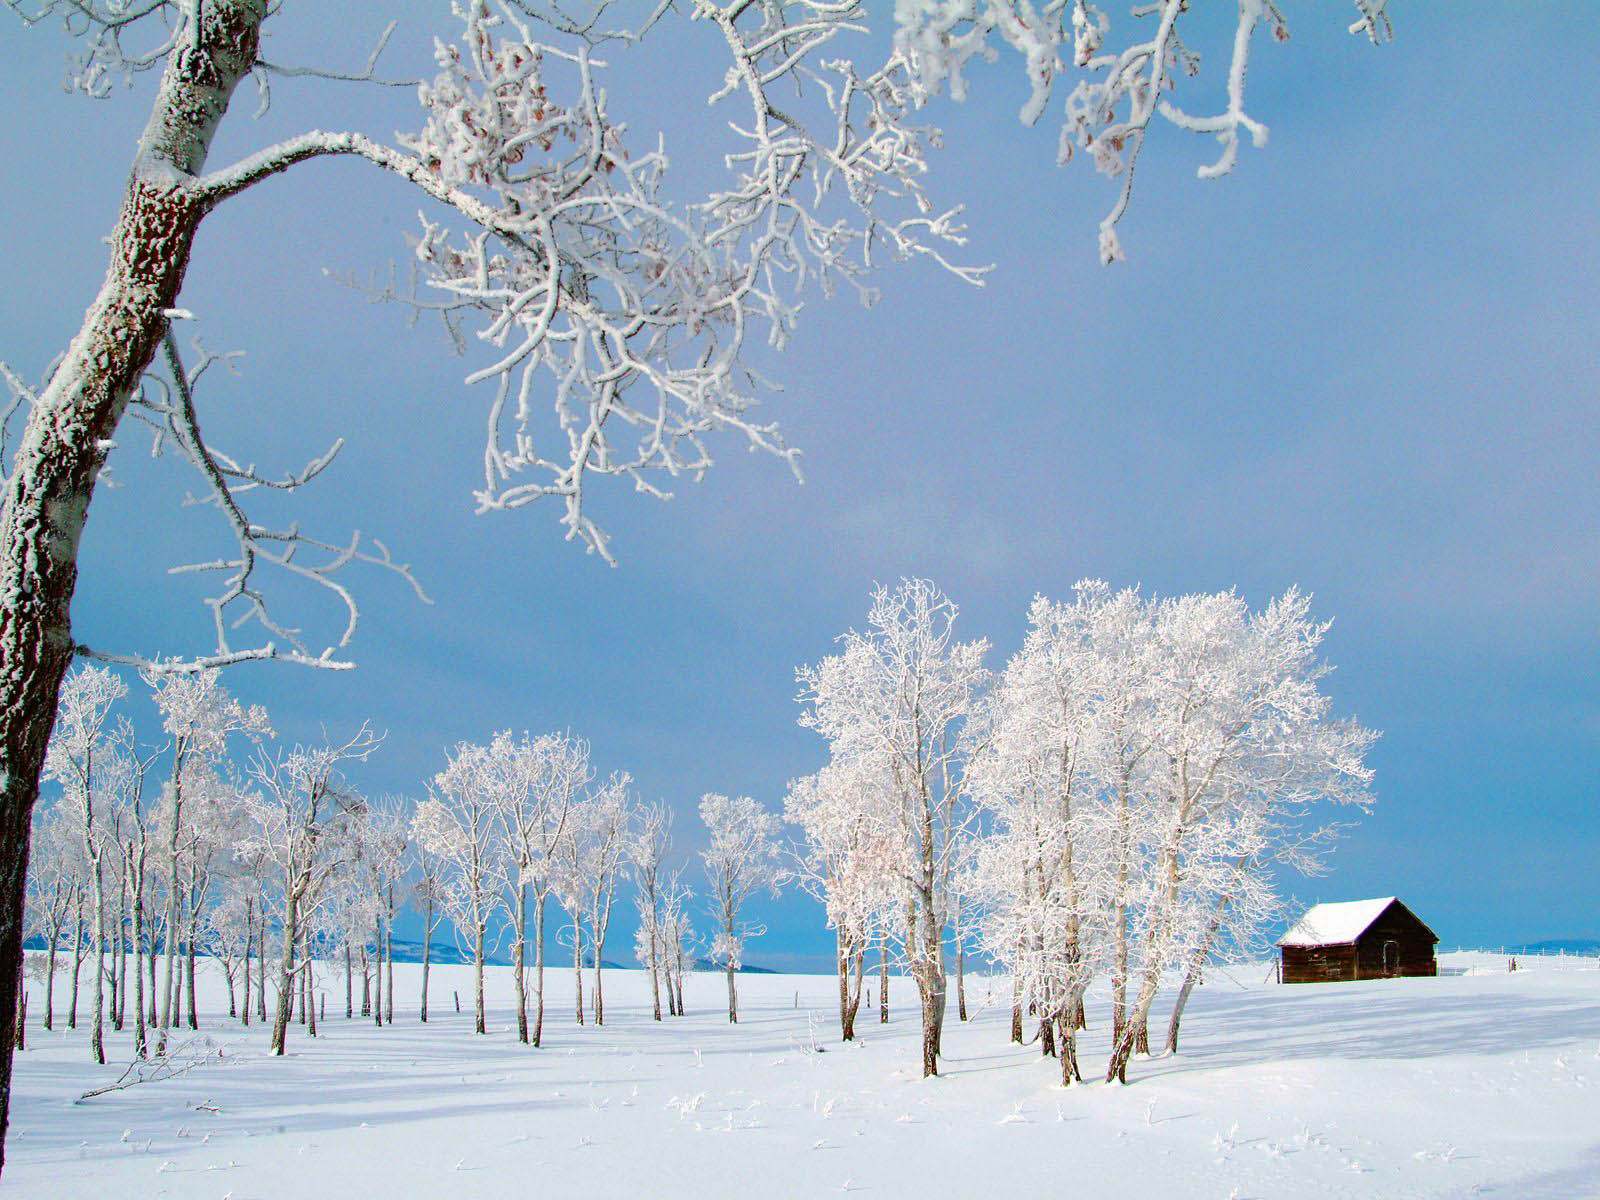 Tag Winter Desktop Wallpapers Backgrounds Photos Picturesand 1600x1200